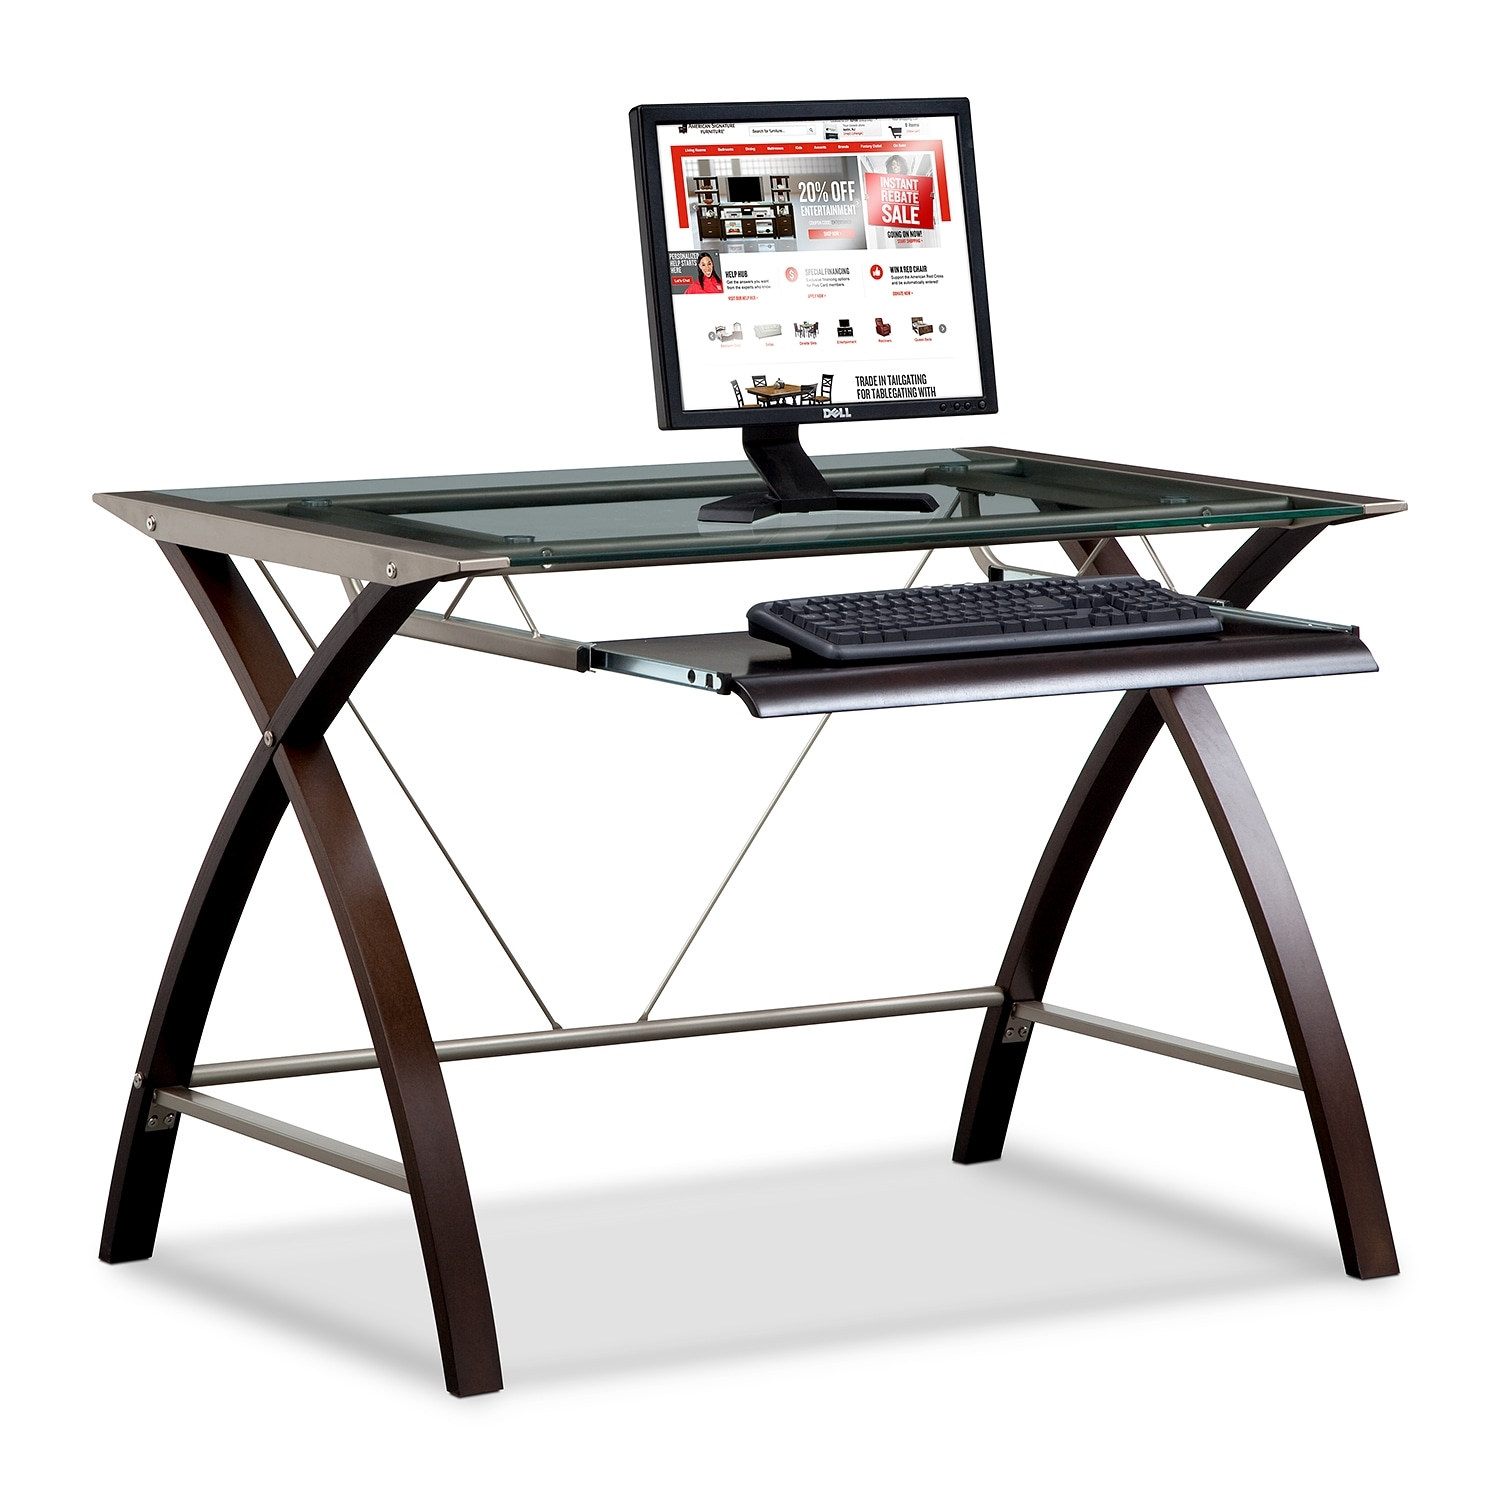 Home Office Furniture - Orion Computer Desk with Keyboard Tray - Merlot and Champagne